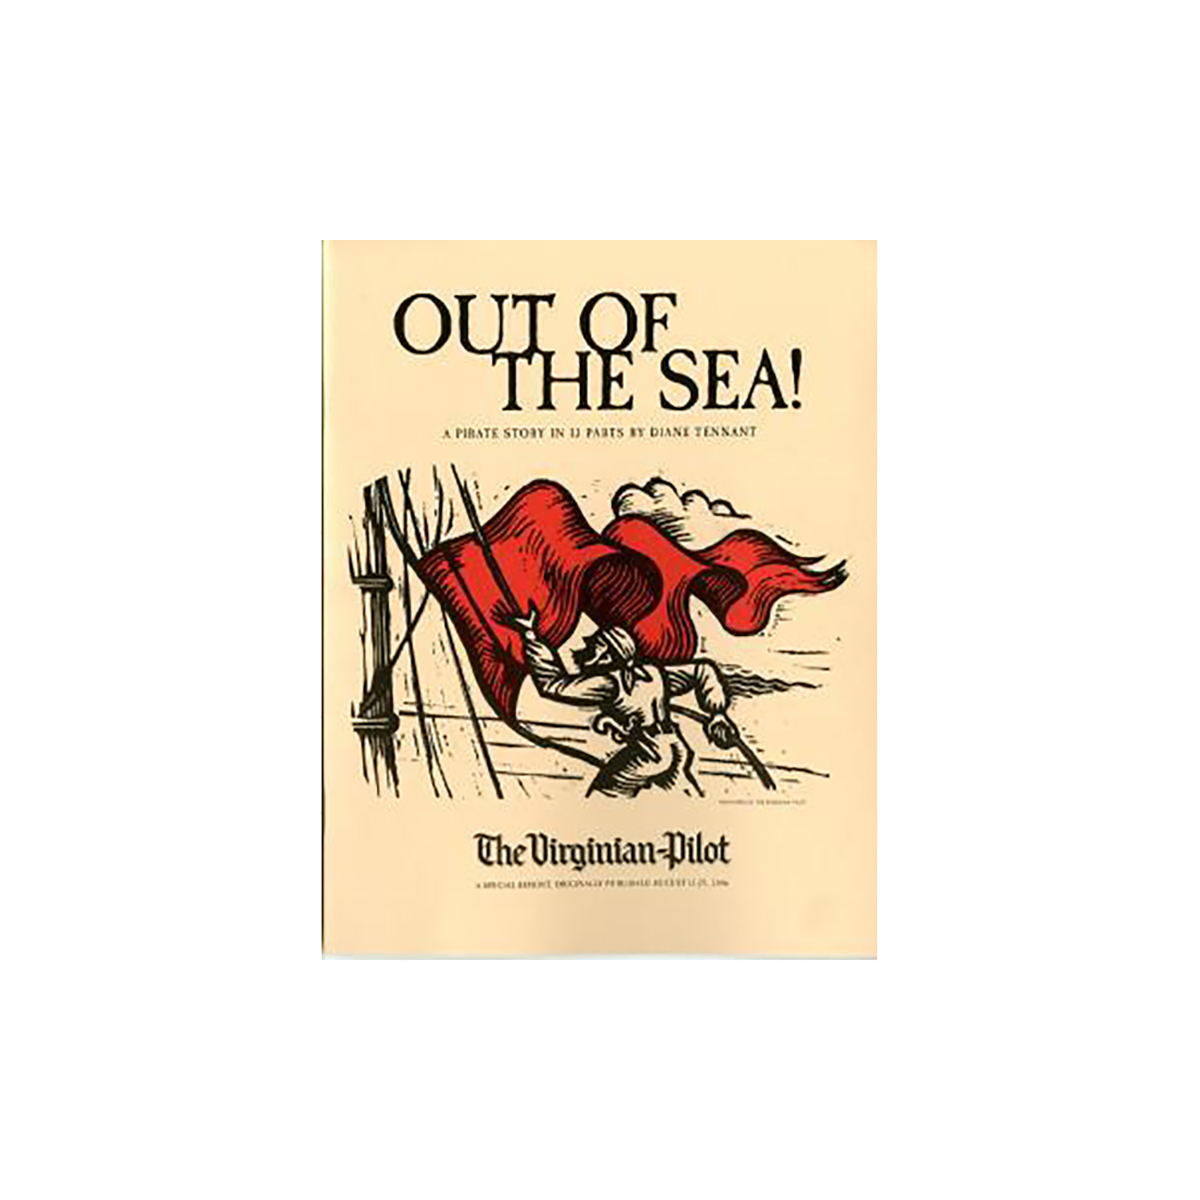 Out of the Sea